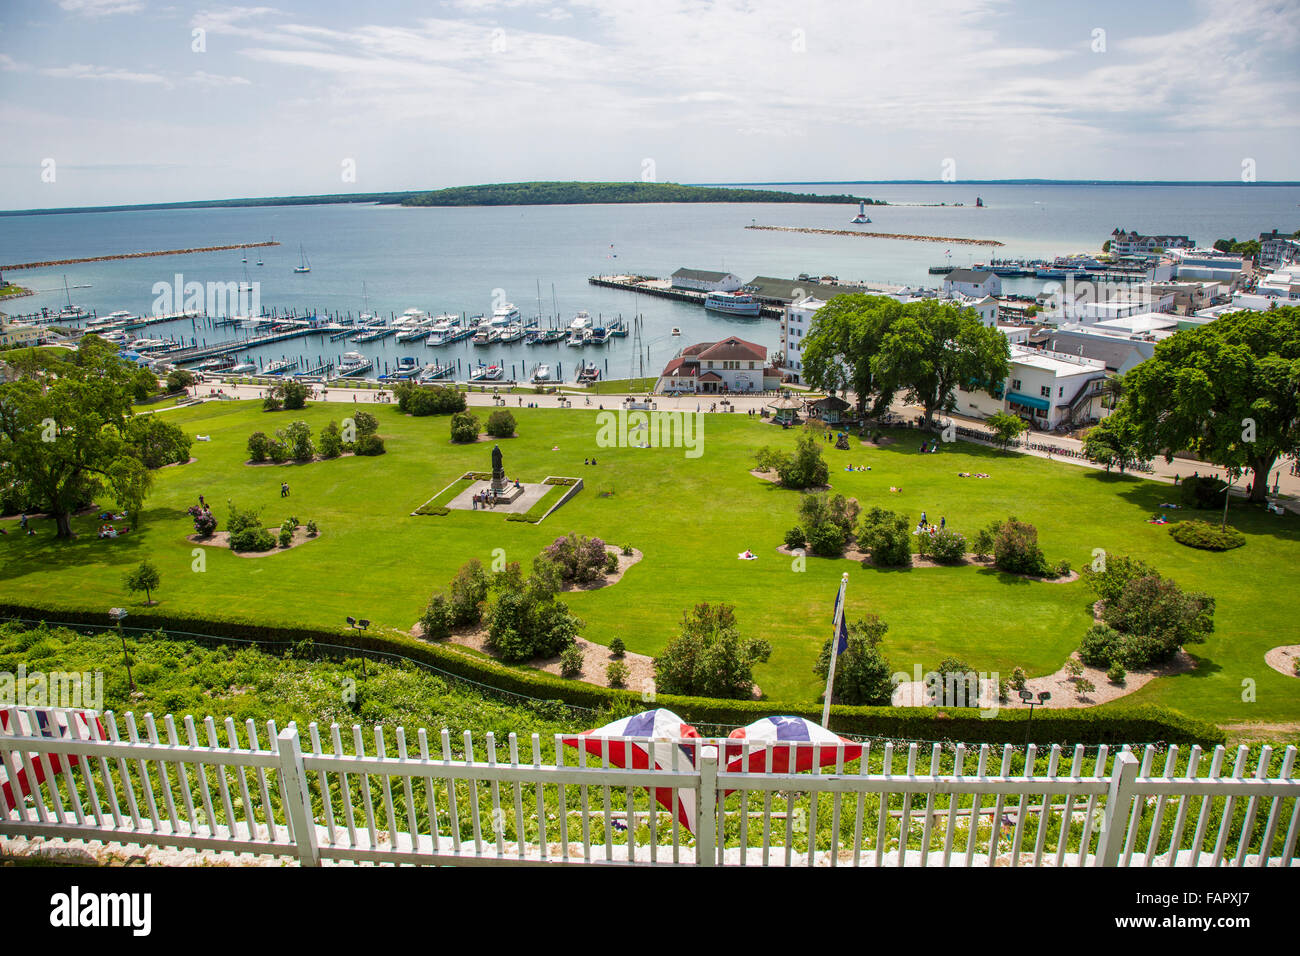 View from Fort Mackinac of park on resort island of Mackinac Island in Michigan - Stock Image